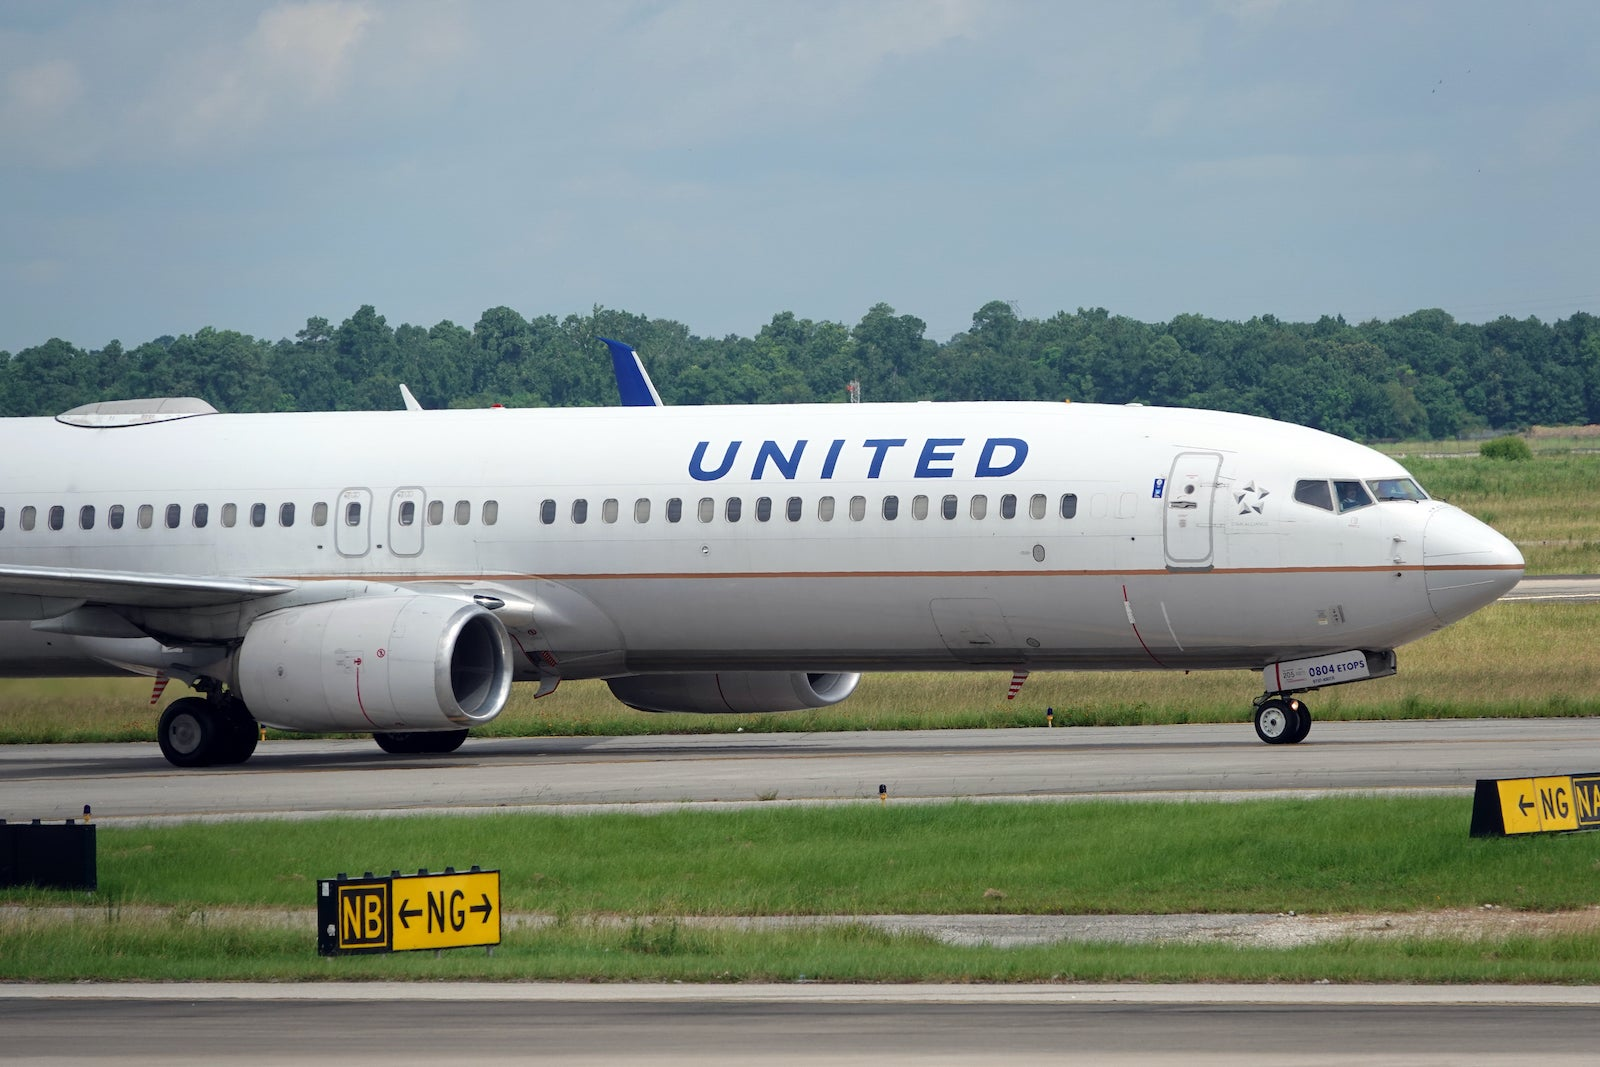 United is adding 3 new routes to the Caribbean, Latin America